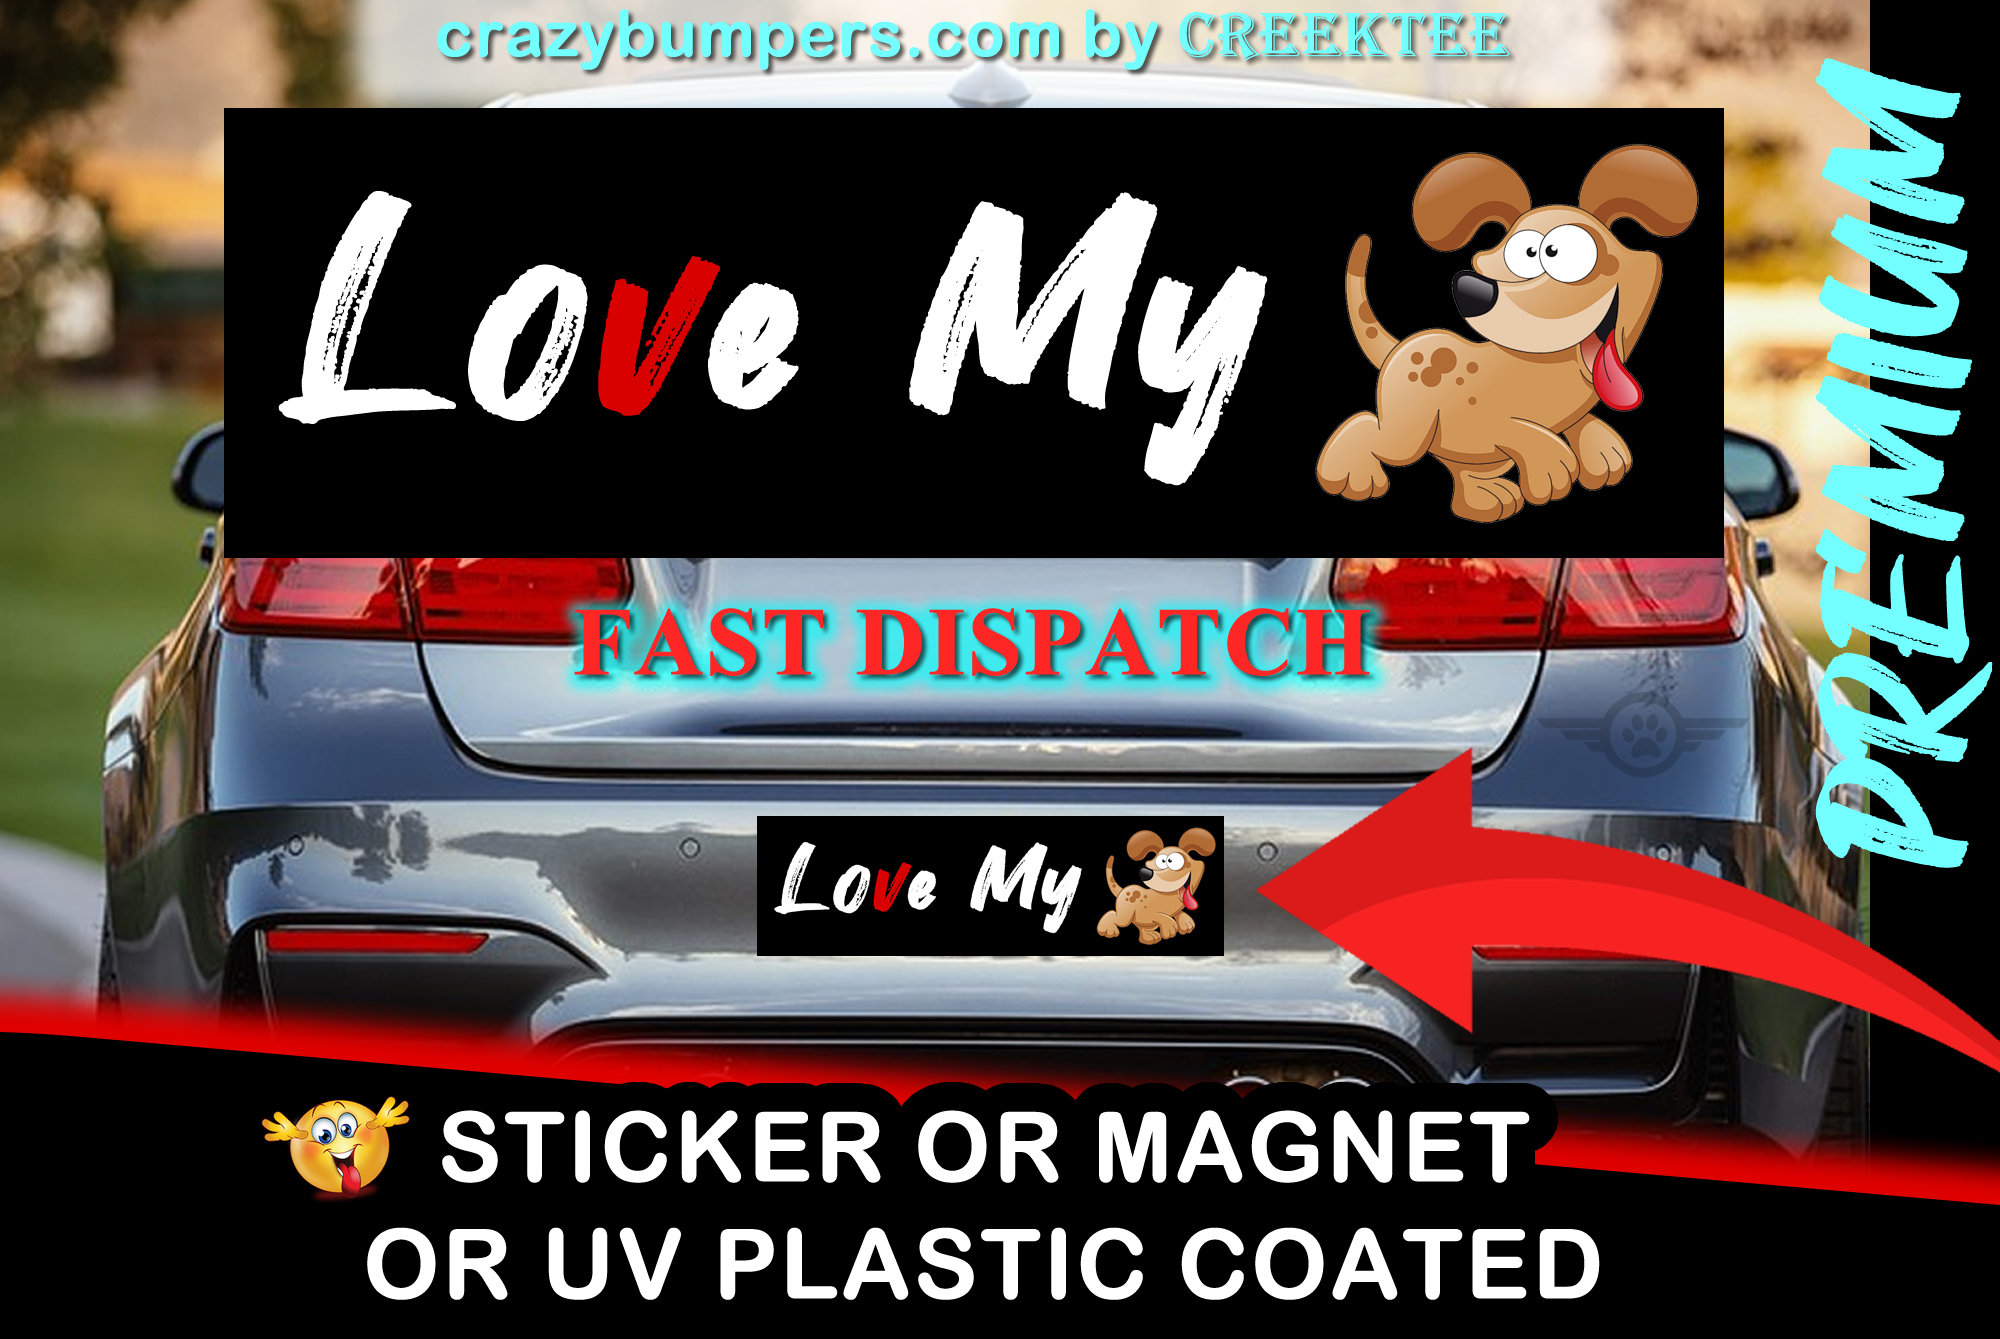 CAD$7.99 - Funny Bumper Sticker 10 x 3 Bumper Sticker or Magnetic Bumper - love my dog, co-exist, funky town, dont poke the bear, honk if your horny